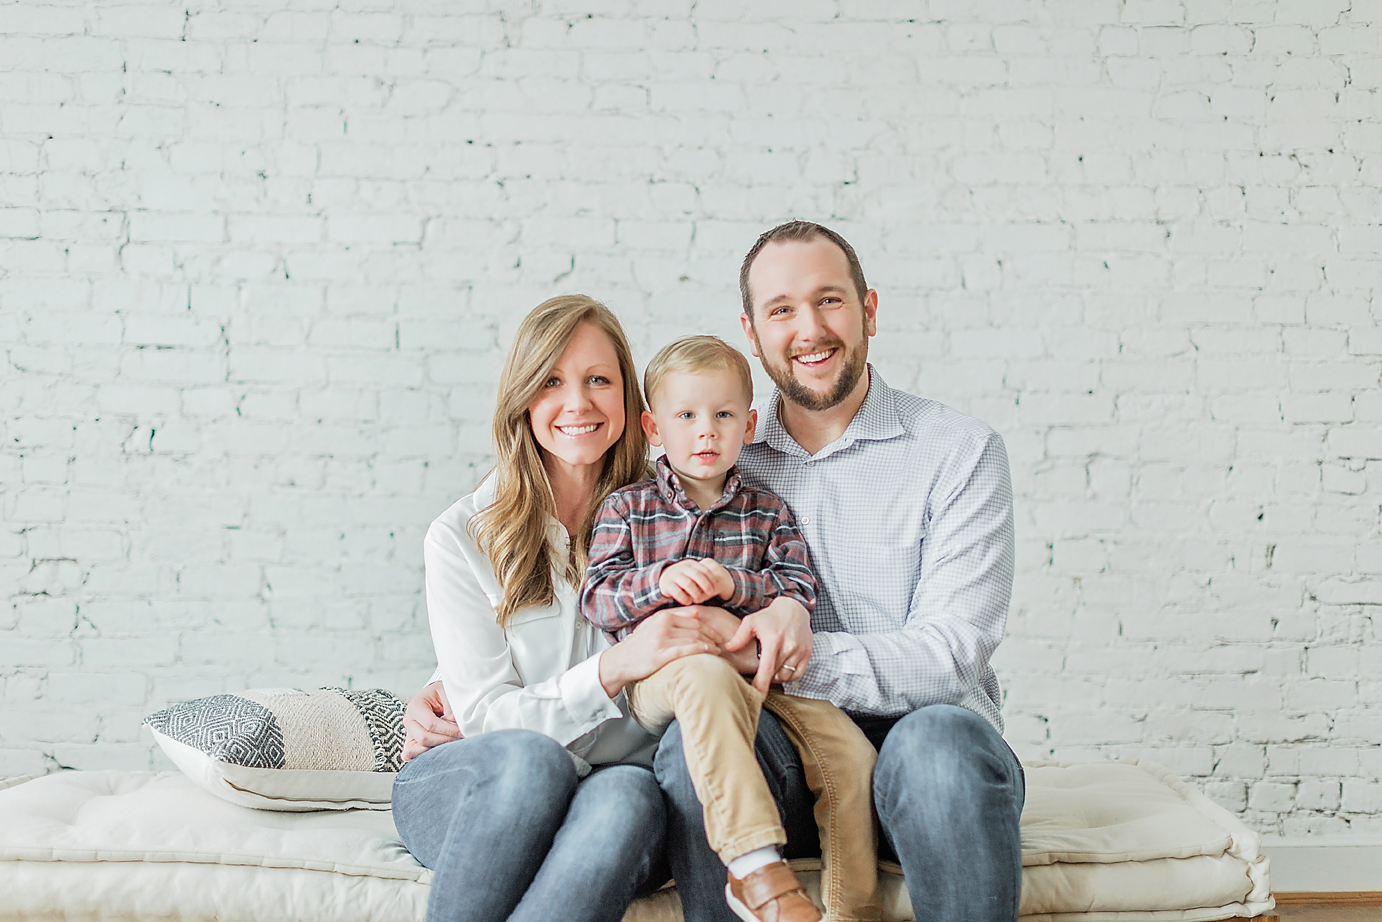 Dallas Flower Mound Family Photographer Lantana photography Linden Kate Marie Portraiture 10.png